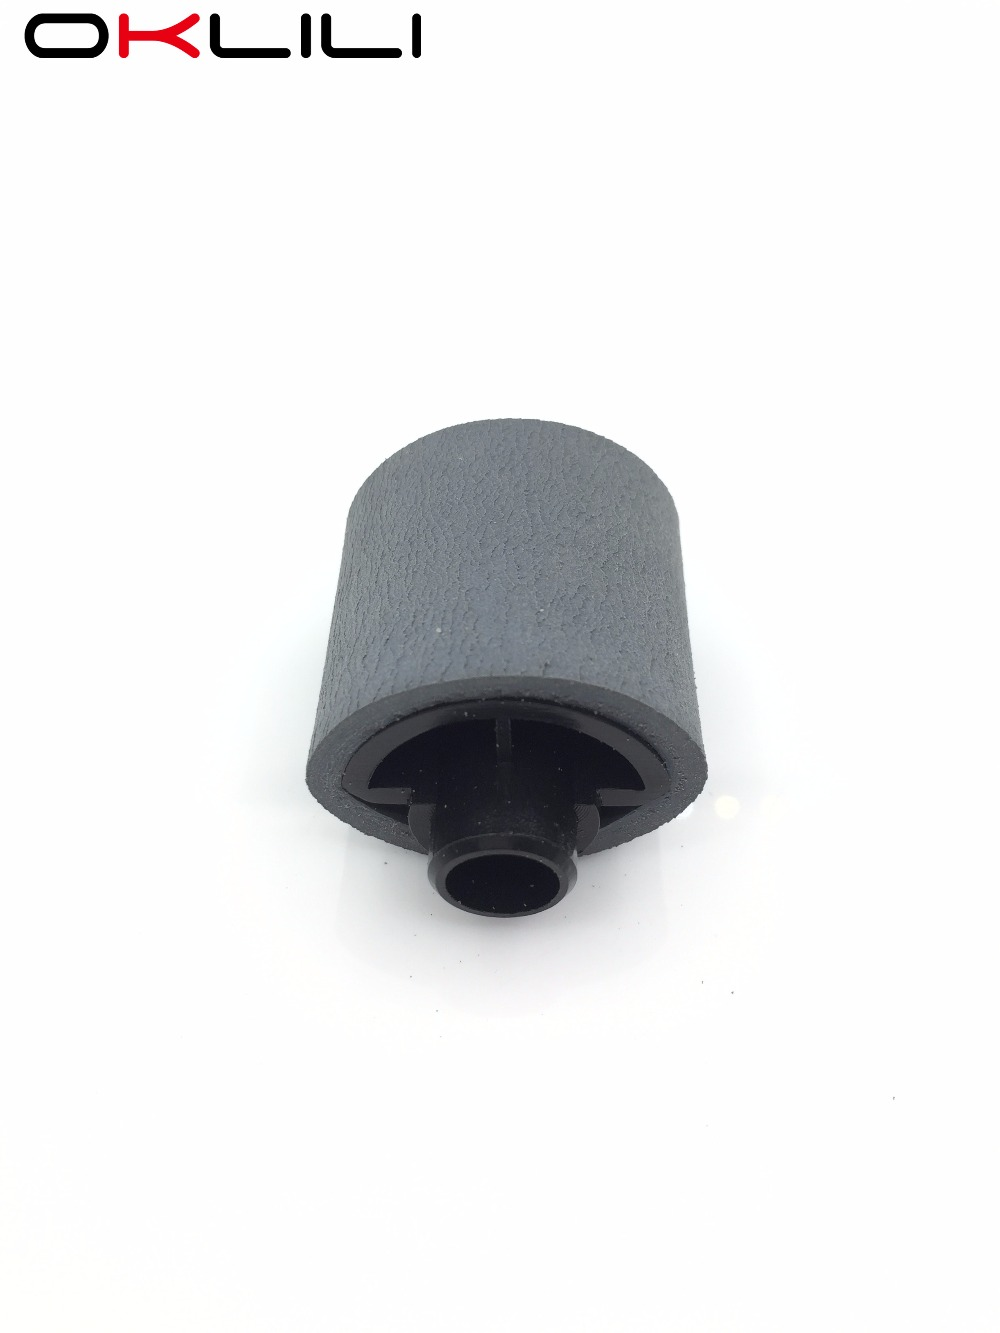 10PCX JC72-01231A Pickup Roller for Samsung ML1510 1710 1740 1750 2250 SCX4016 4116 4100 4200 4220 4300 4500 4520 4720 SF560 565 2 x jc72 01231a original new pick up roller for samsung ml1510 ml1710 ml1740 scx 4100 4200 4300 565p 560 4016 4216 560r